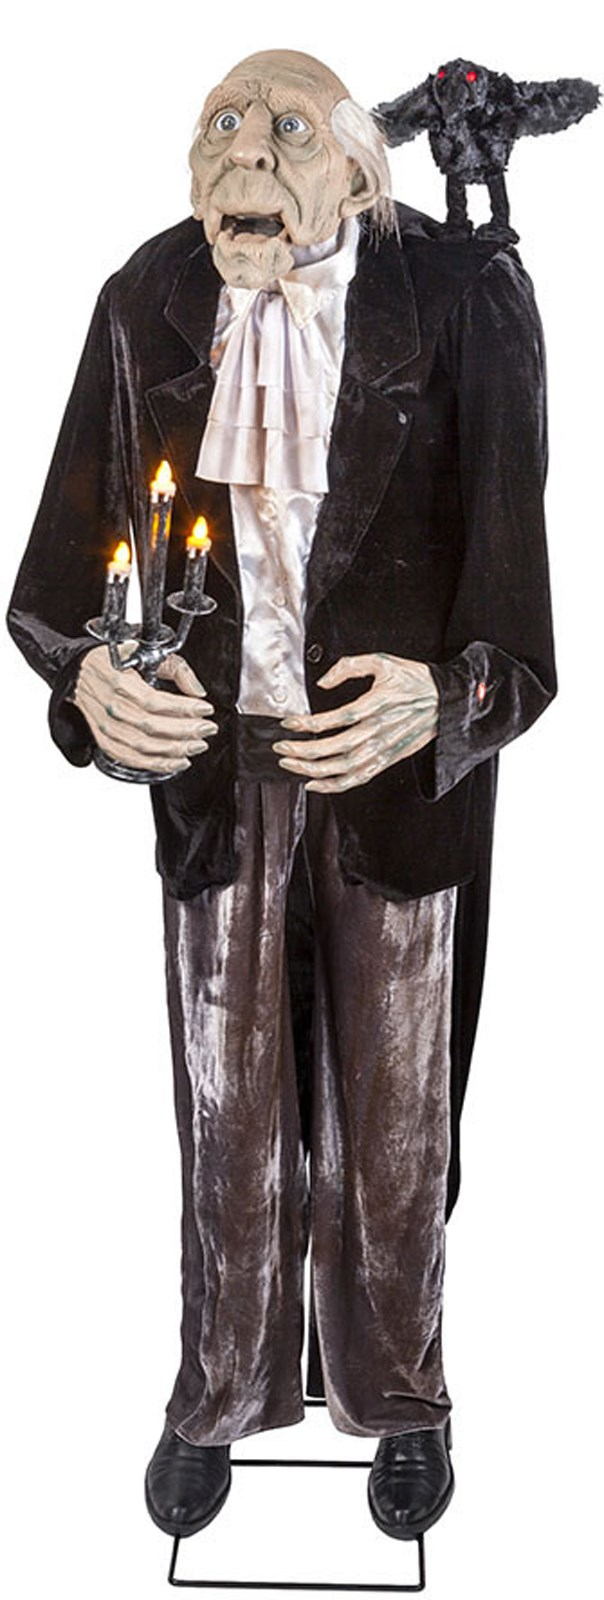 Animated Talking Butler And Crow With Light Up Candelabra